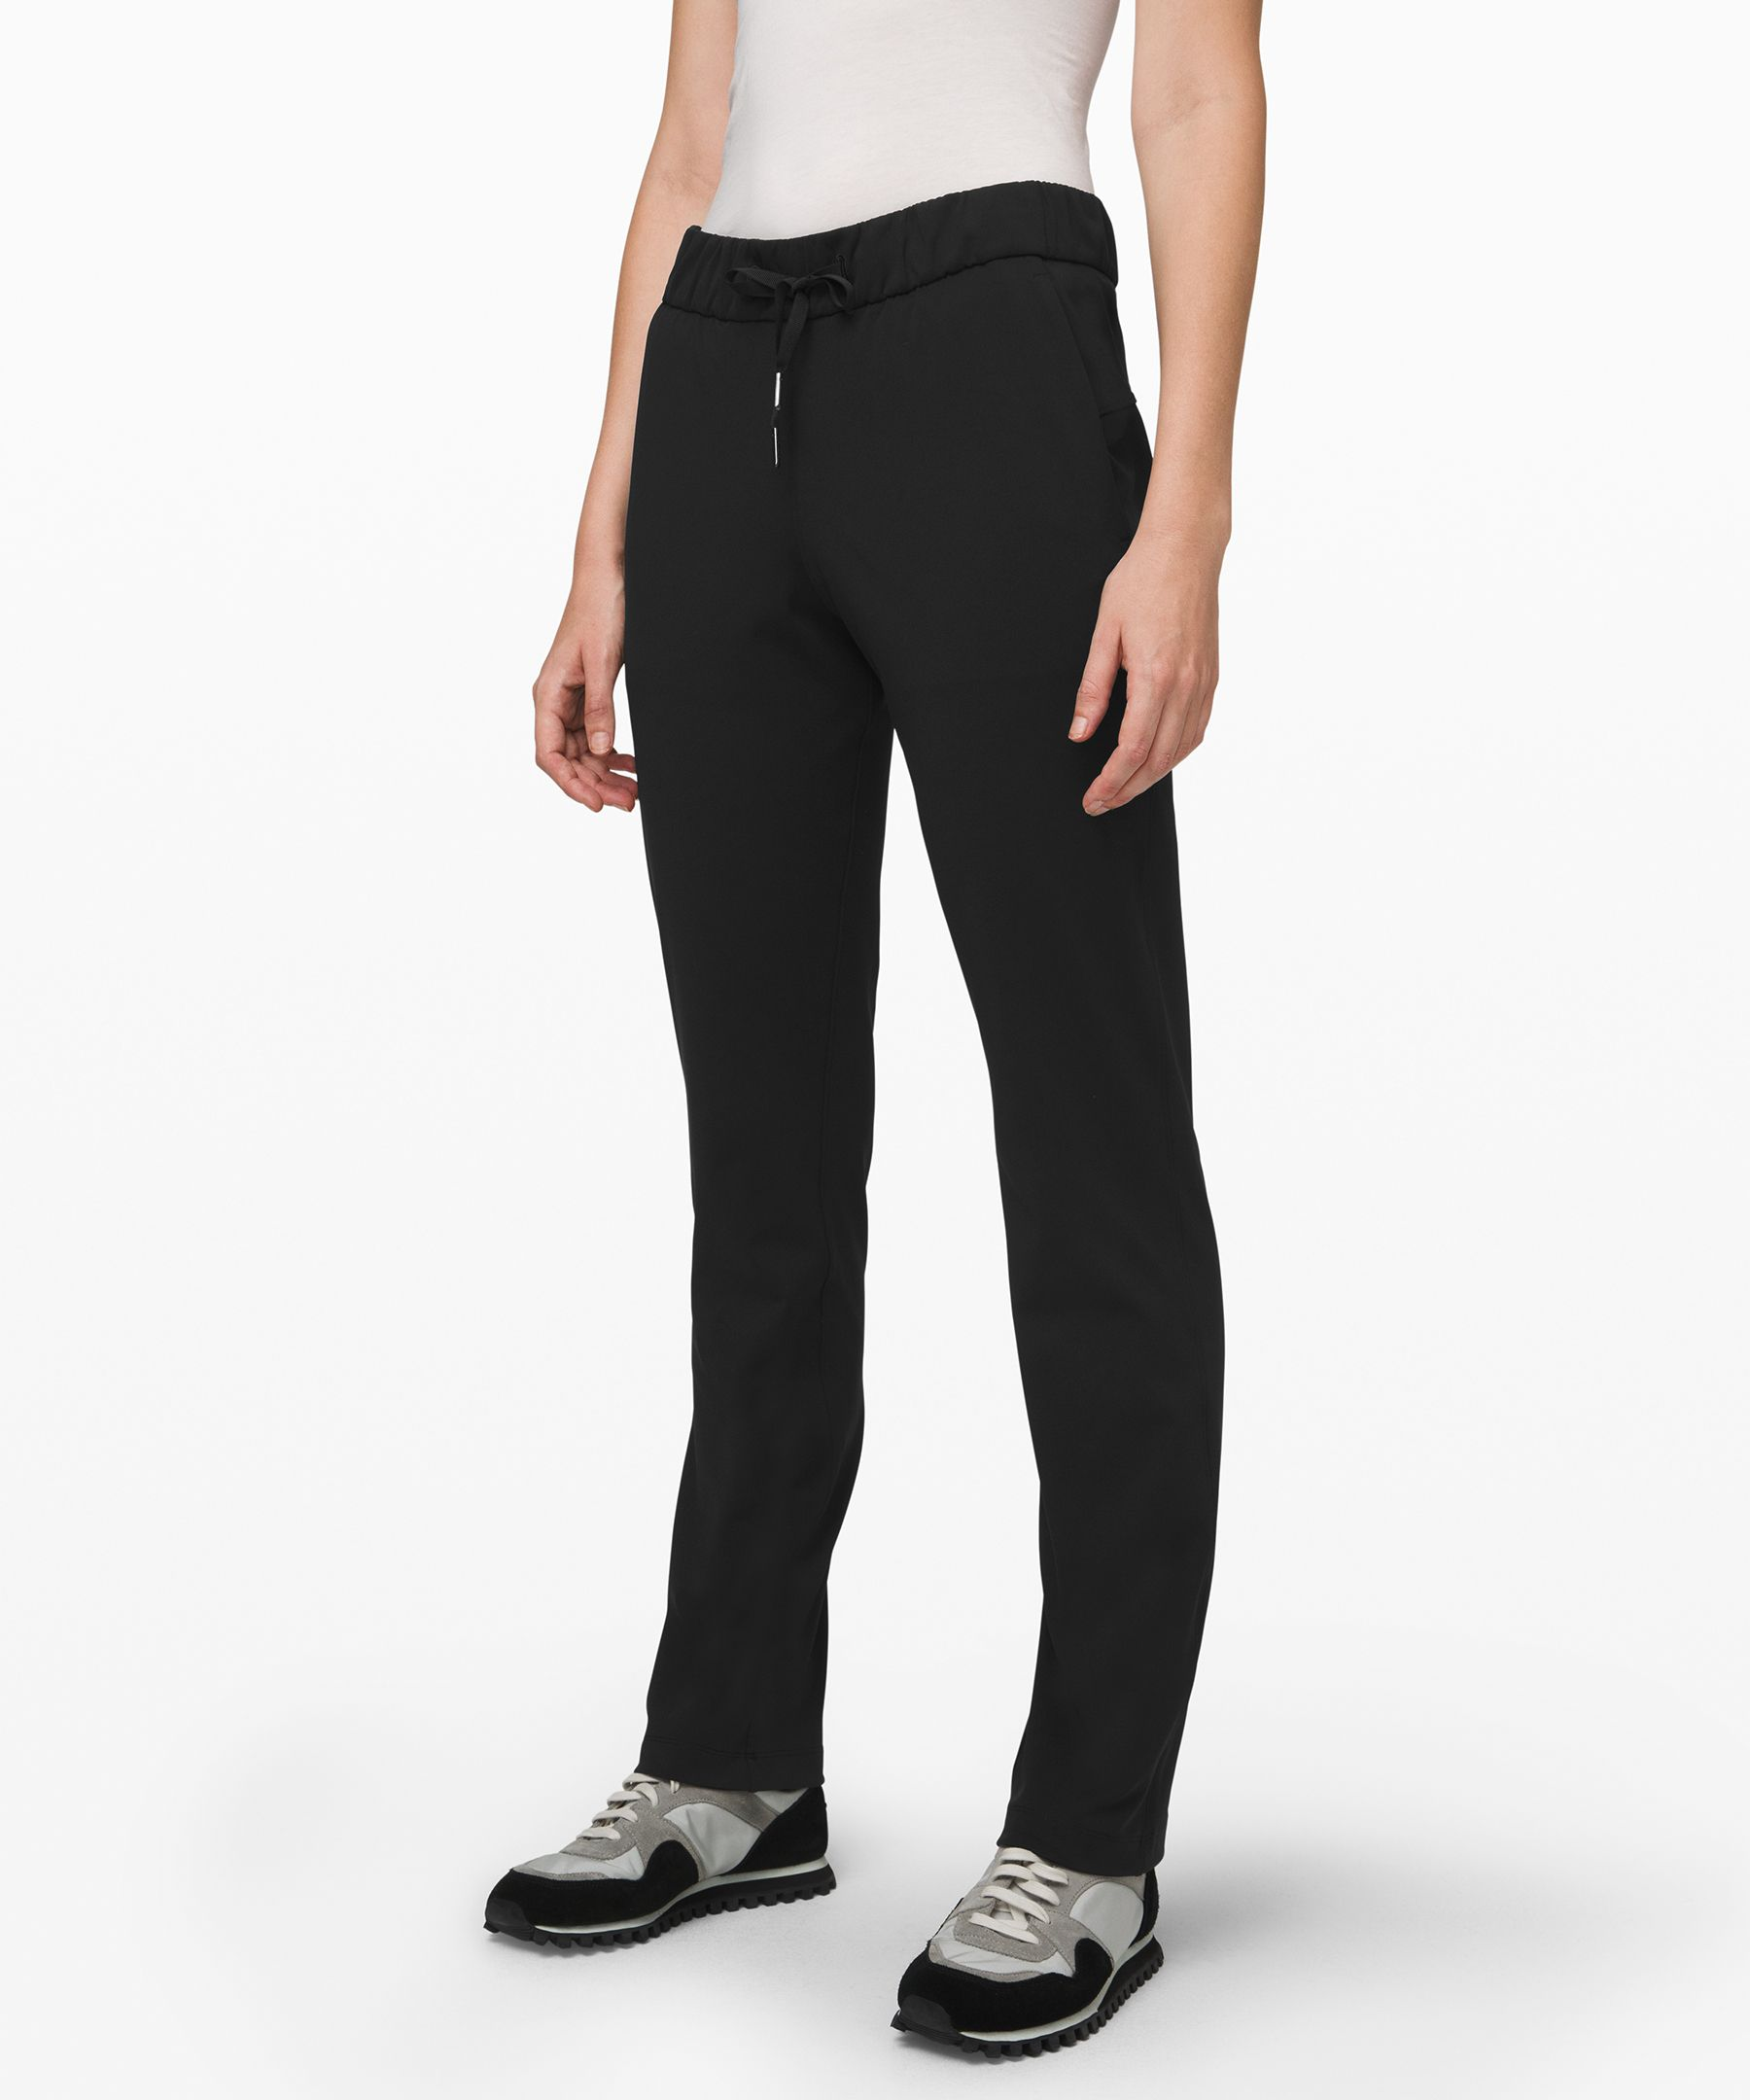 on-the-fly-pant-full-length-online-onlyfull-on-luxtreme by lululemon